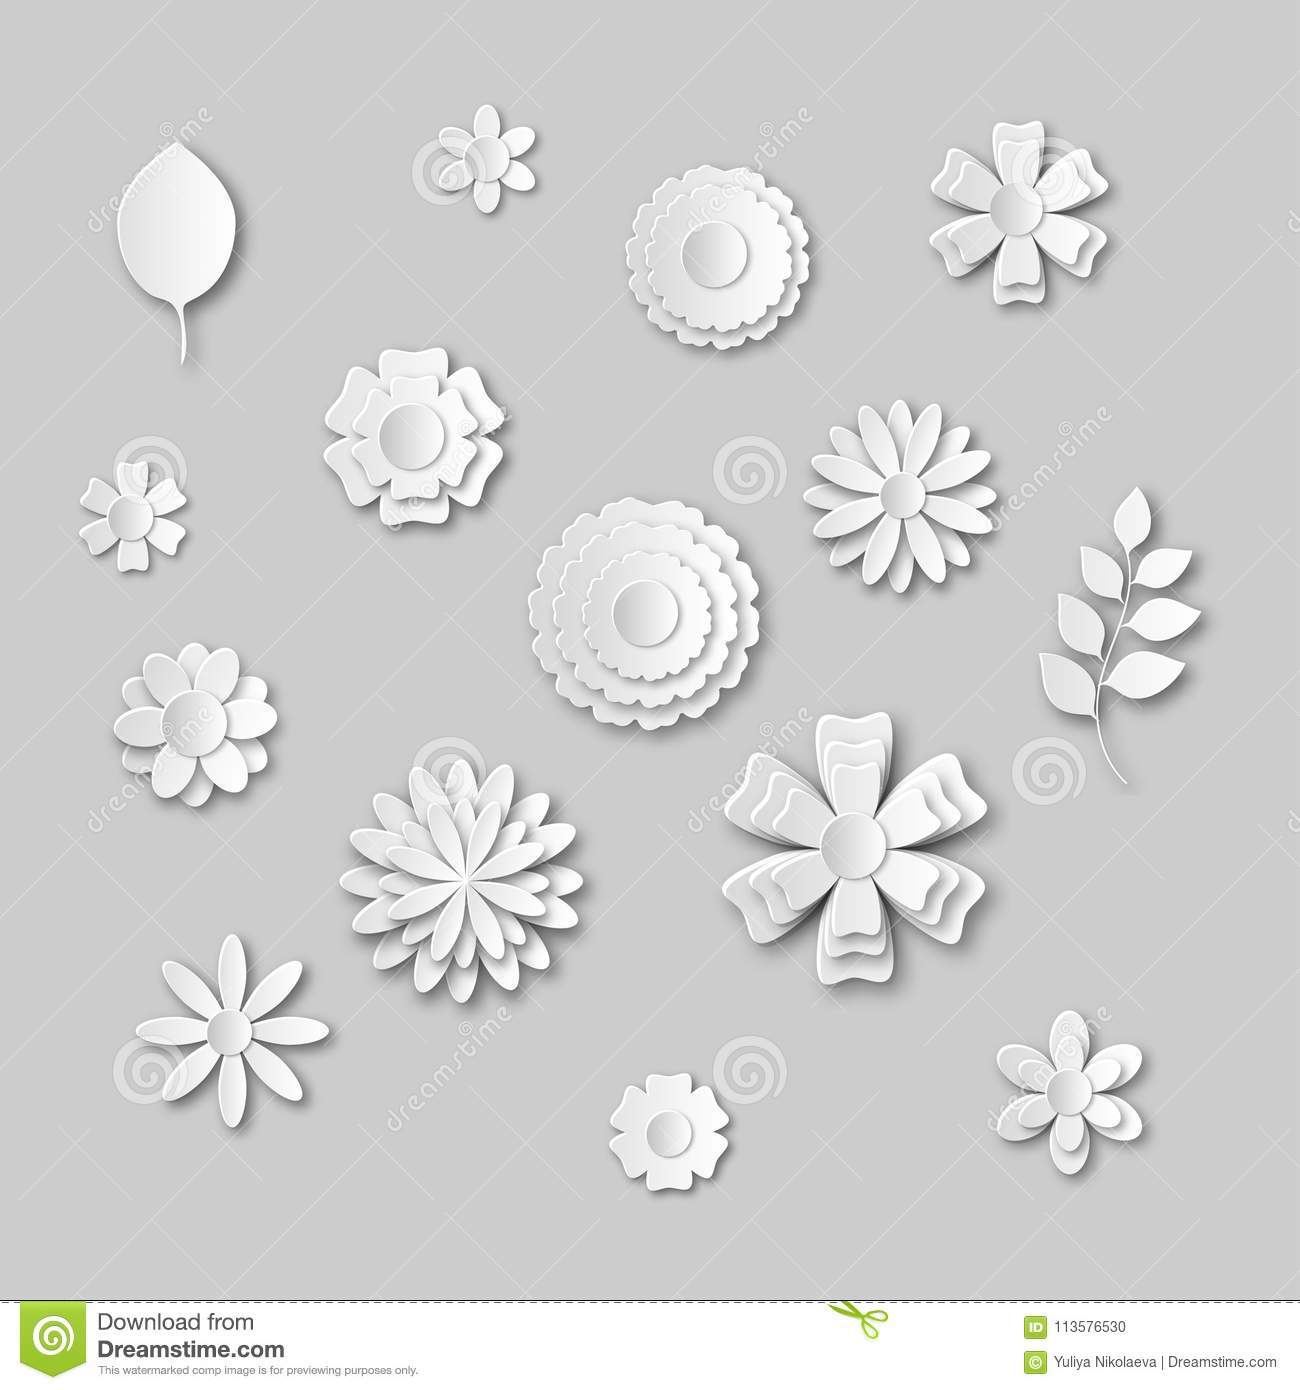 Paper Art Flowers Set Gray Scale White Abstract Flower Stock